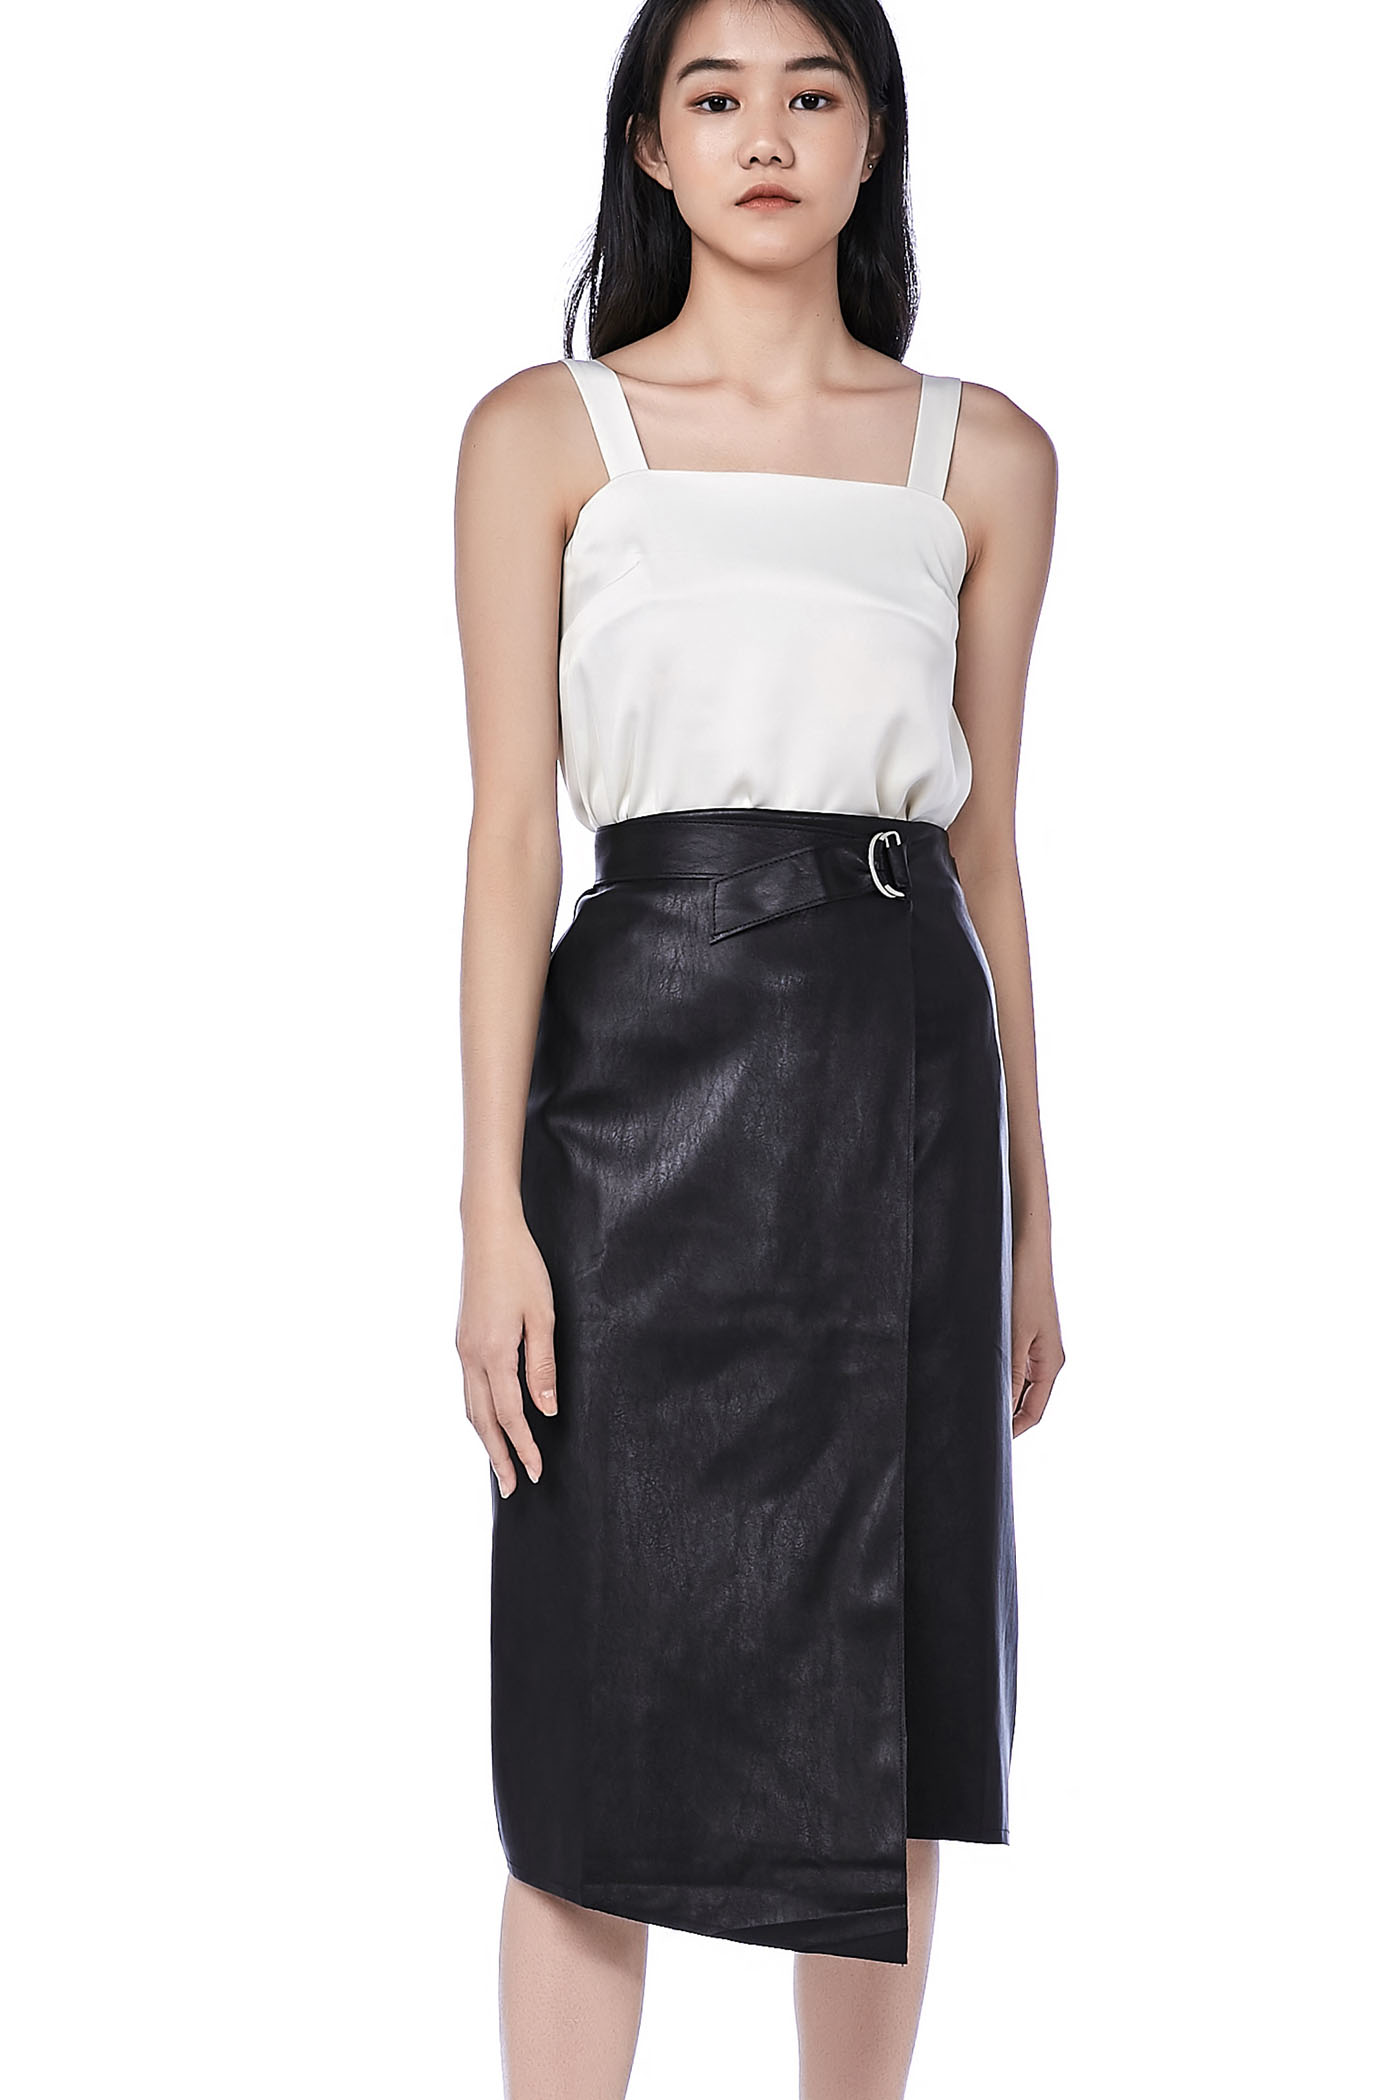 Nelly Square Neck Crop Top